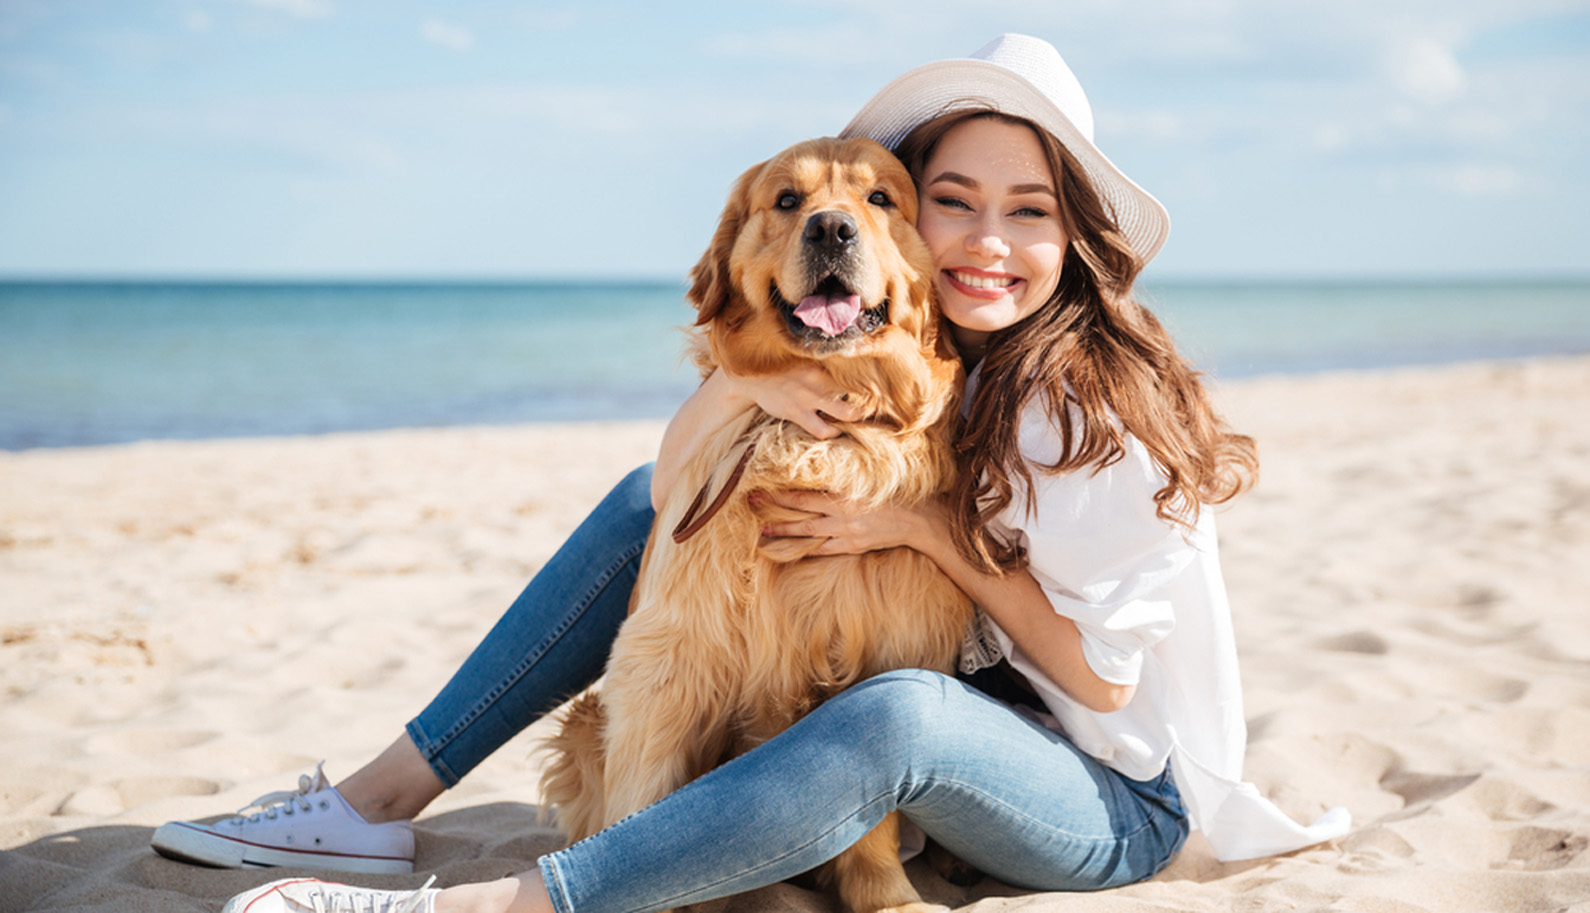 For comprehensive preventative care for your pet,We are a caring facility serving Clay, Pinson, Trussville, and surrounding areas.